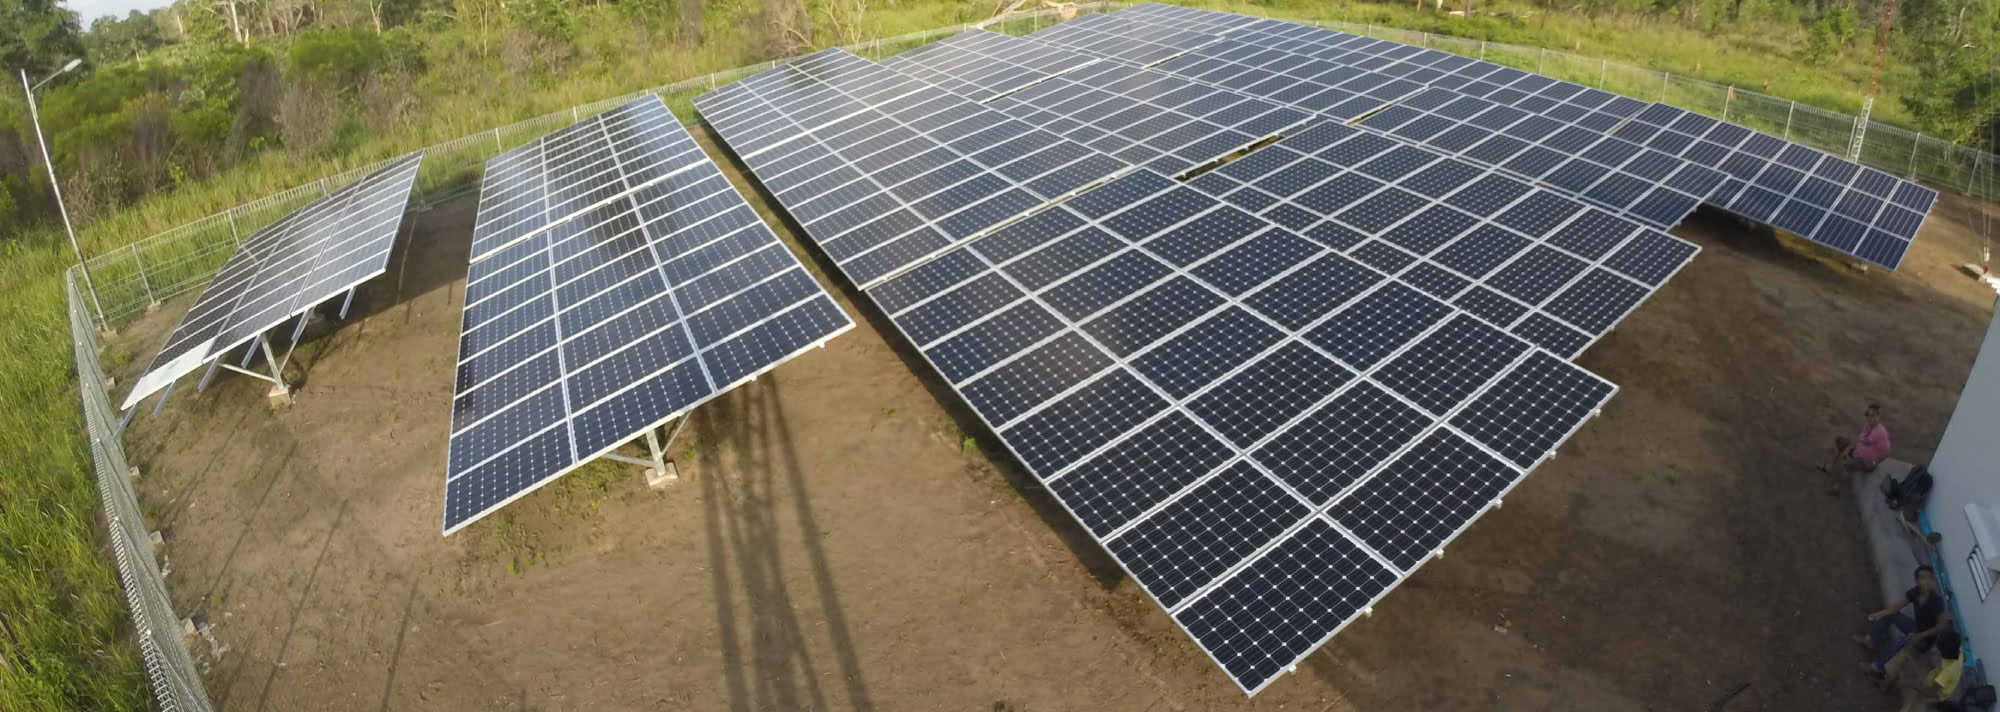 Solar Energy Projects Proinso By Electronic Electrical As A World Leading Company In Pv And Diesel Hybrid Global Partner Of Sma Offers The Fuel Saver Technology With